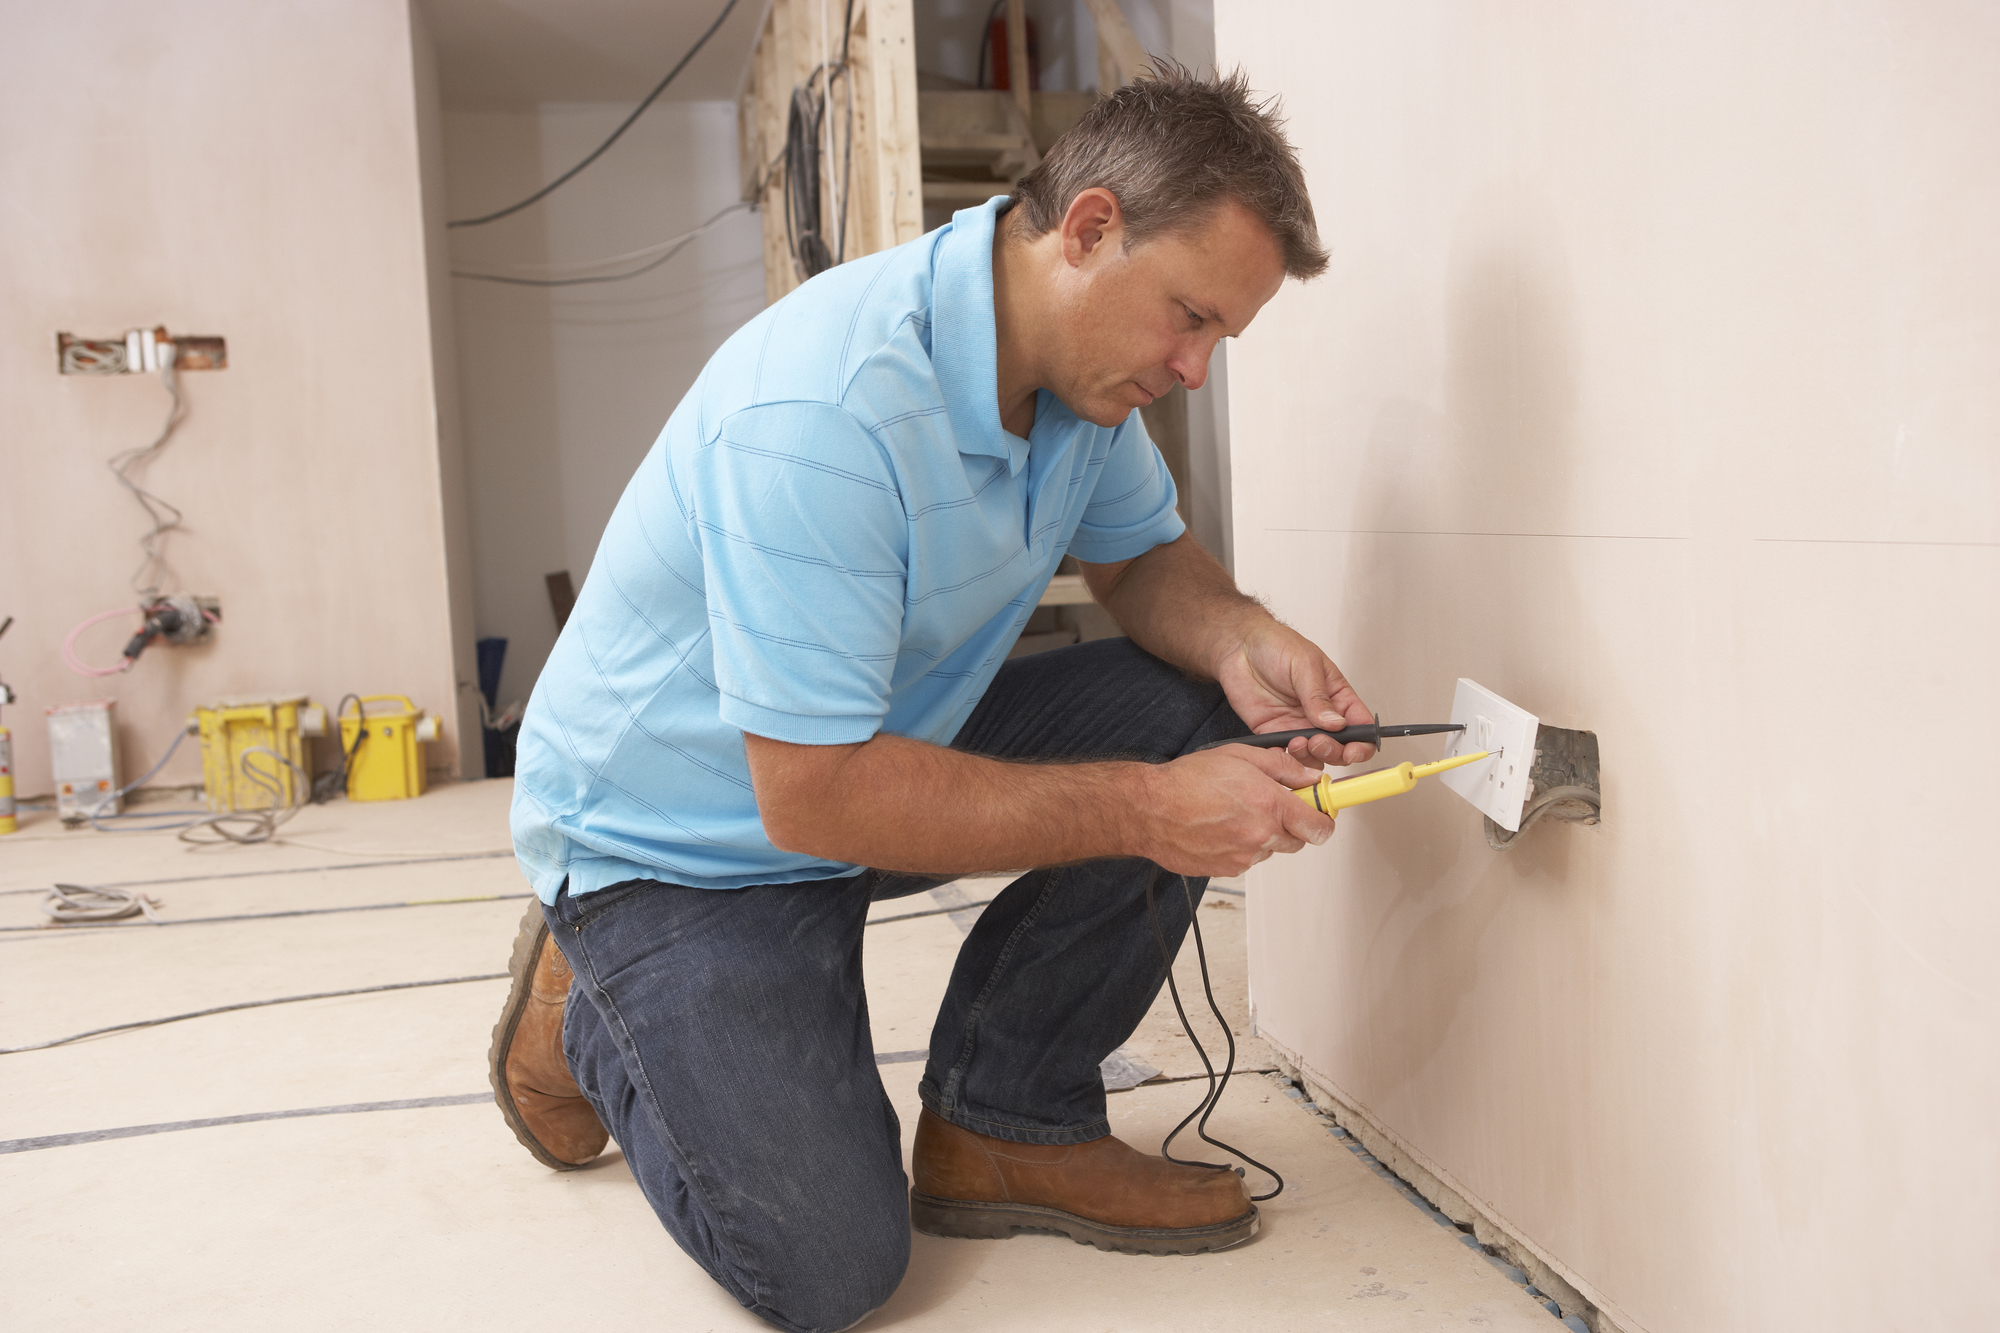 need an electrician  hire a licensed electrical contractor